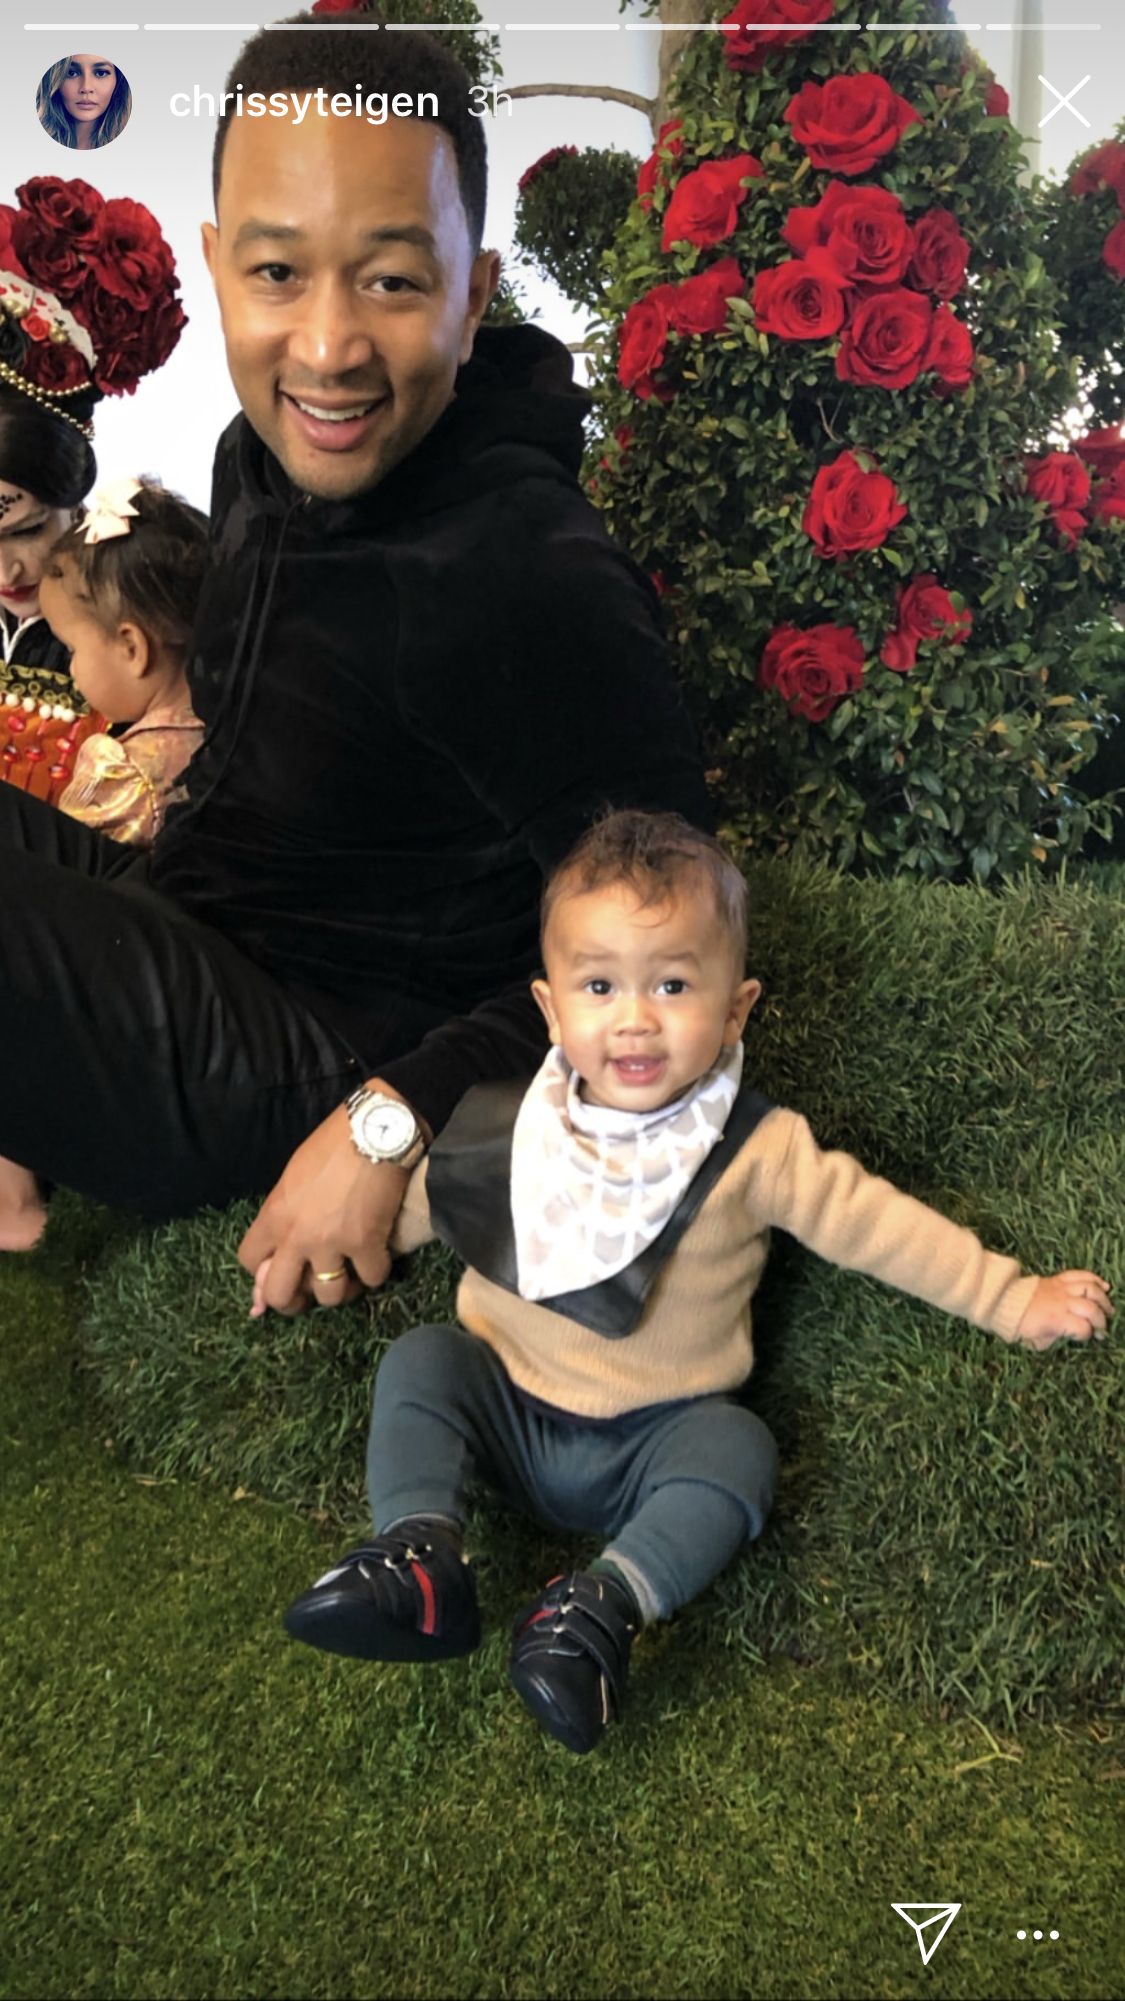 Kim Kardashian, chicago west, birthday party, alice in wonderland, john legend, chrissy teigen - Legend and his look-alike son took a seat by one of the rose bushes.